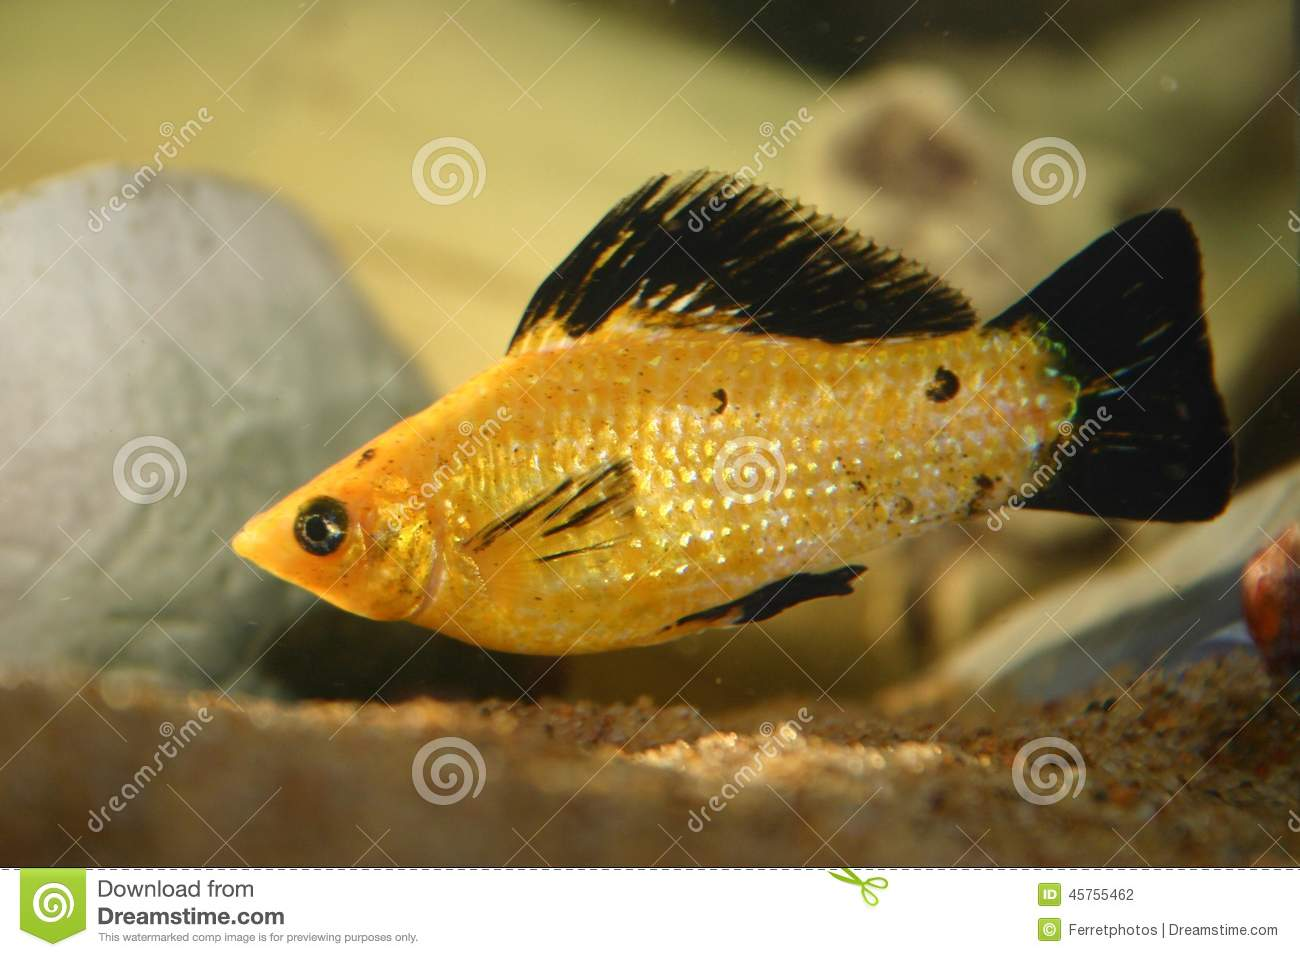 Apologise, male and female molly fish that interfere